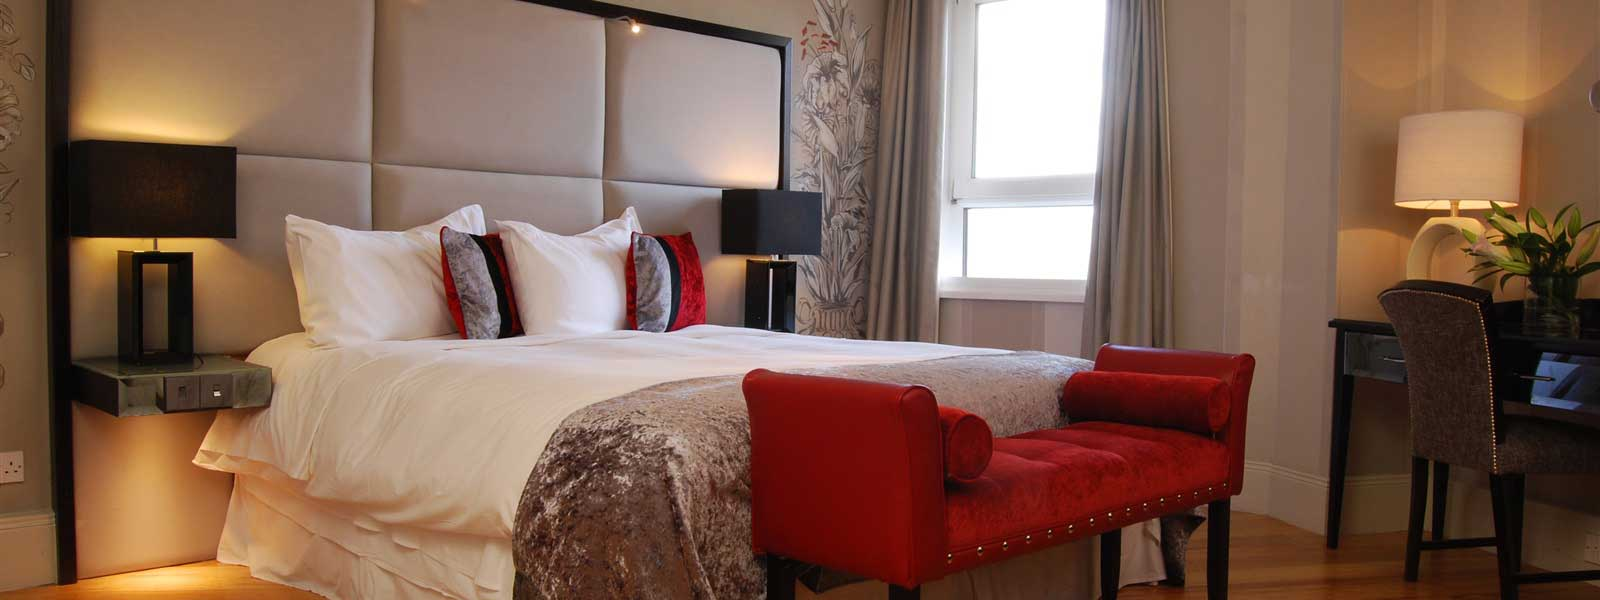 Deluxe Double Room in Belfast Hotel